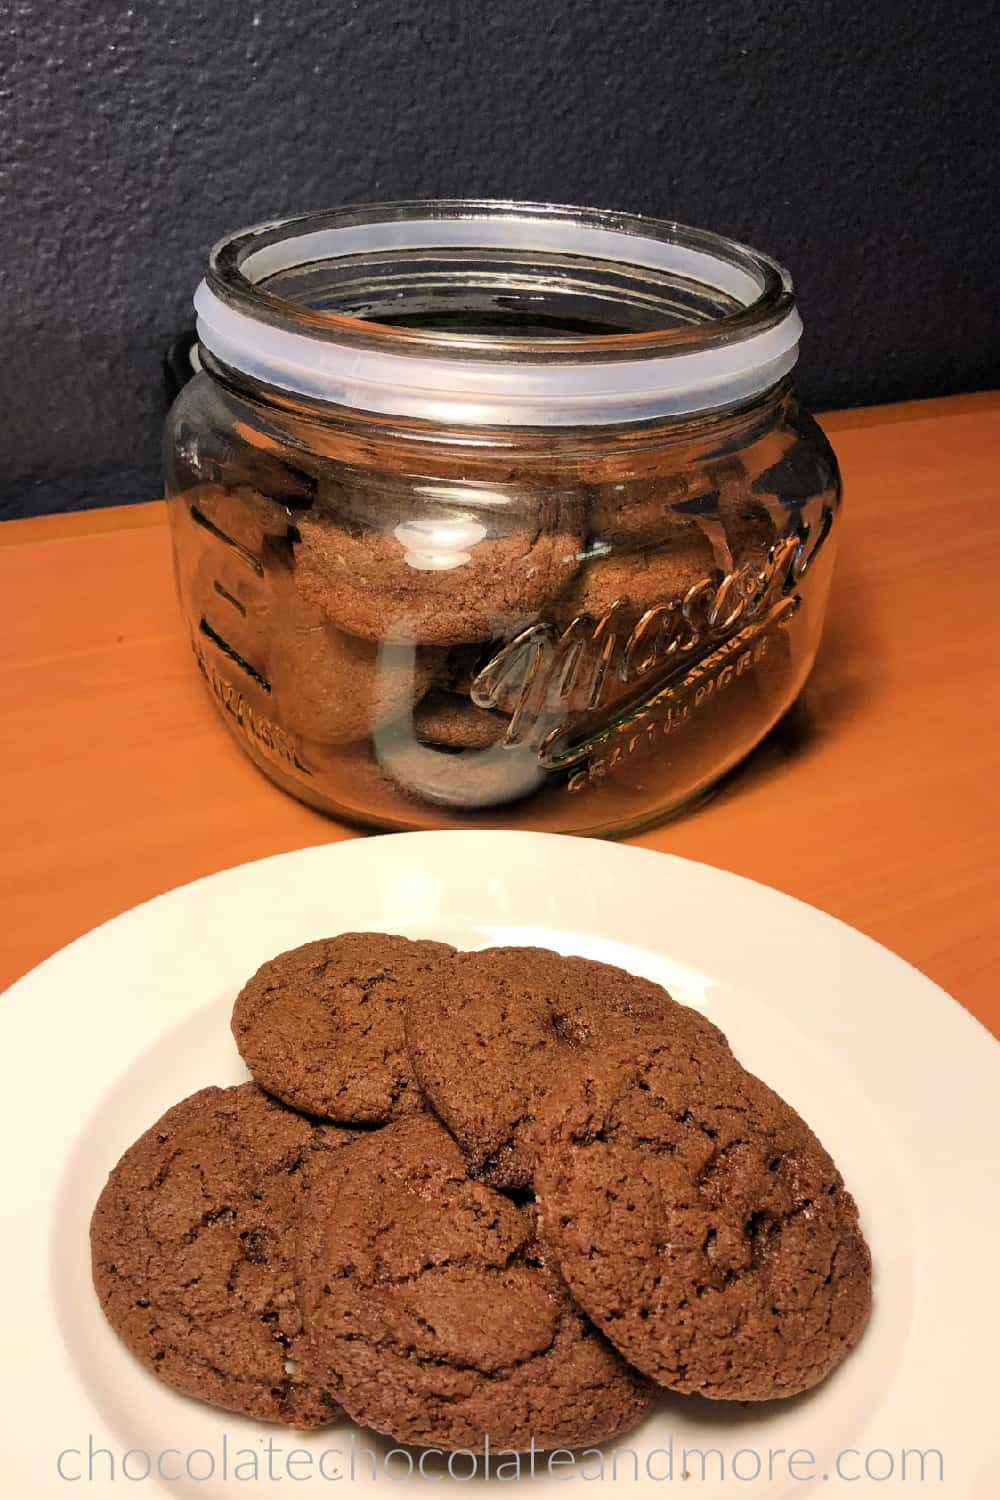 A white plate with five chocolate cookies is in the foreground. The glass cookie jar filled with chocolate cookies is in the background.